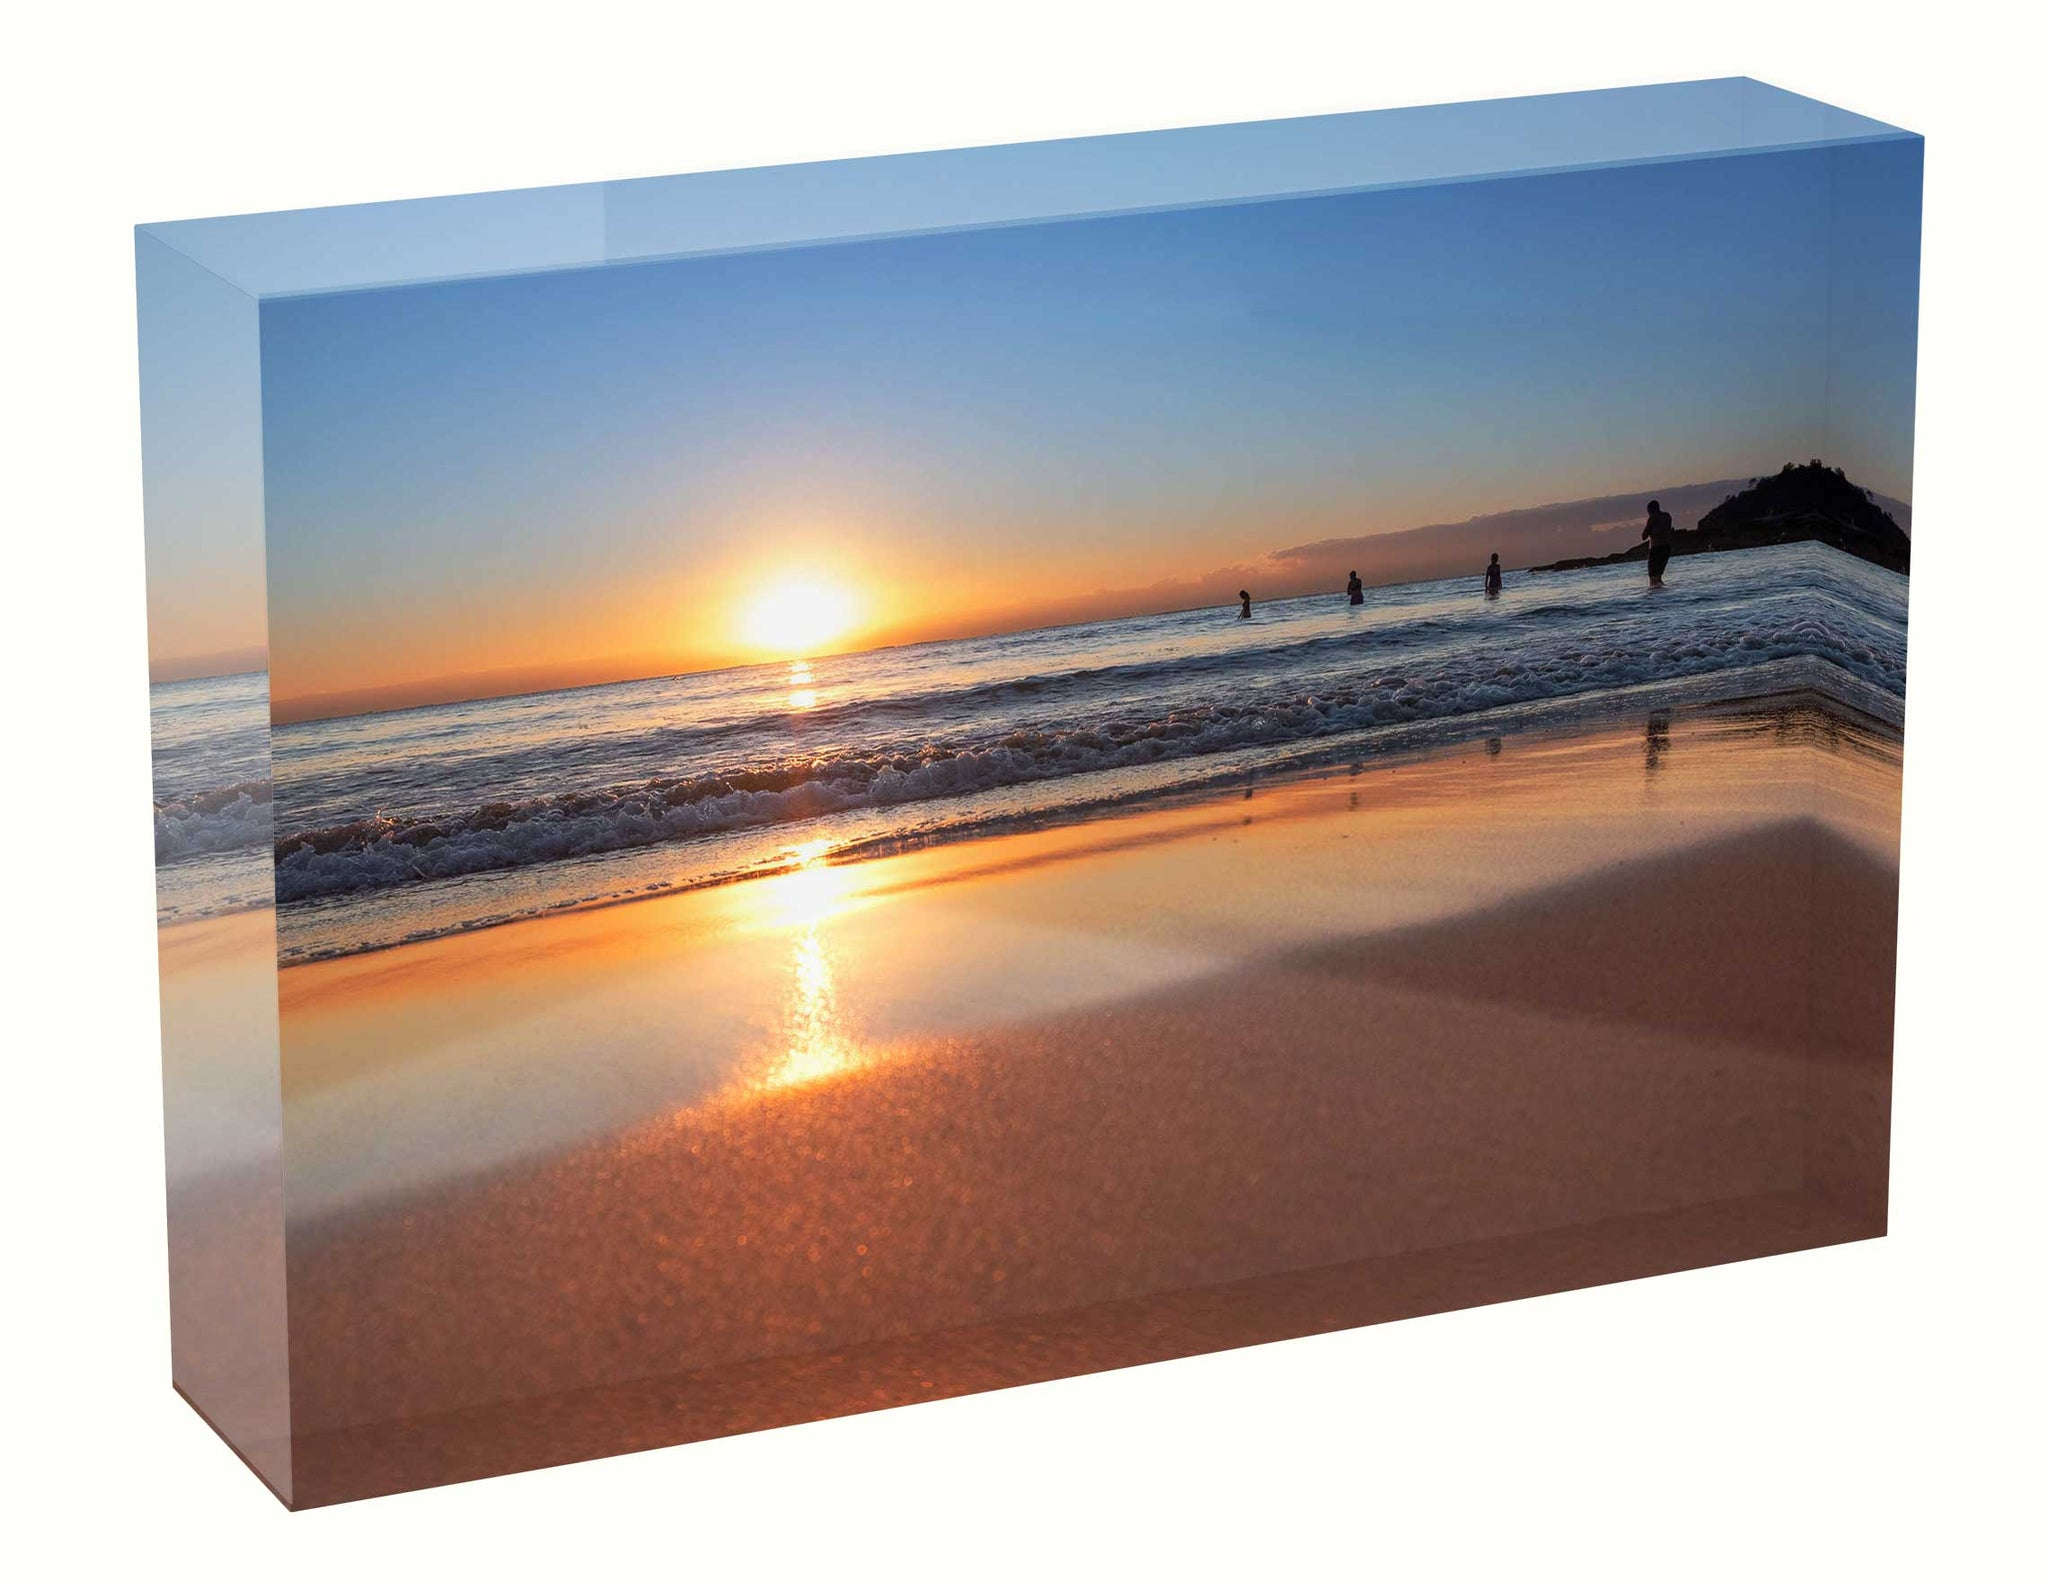 Sunrise photo 6th July 2020 Manly beach Acrylic Block